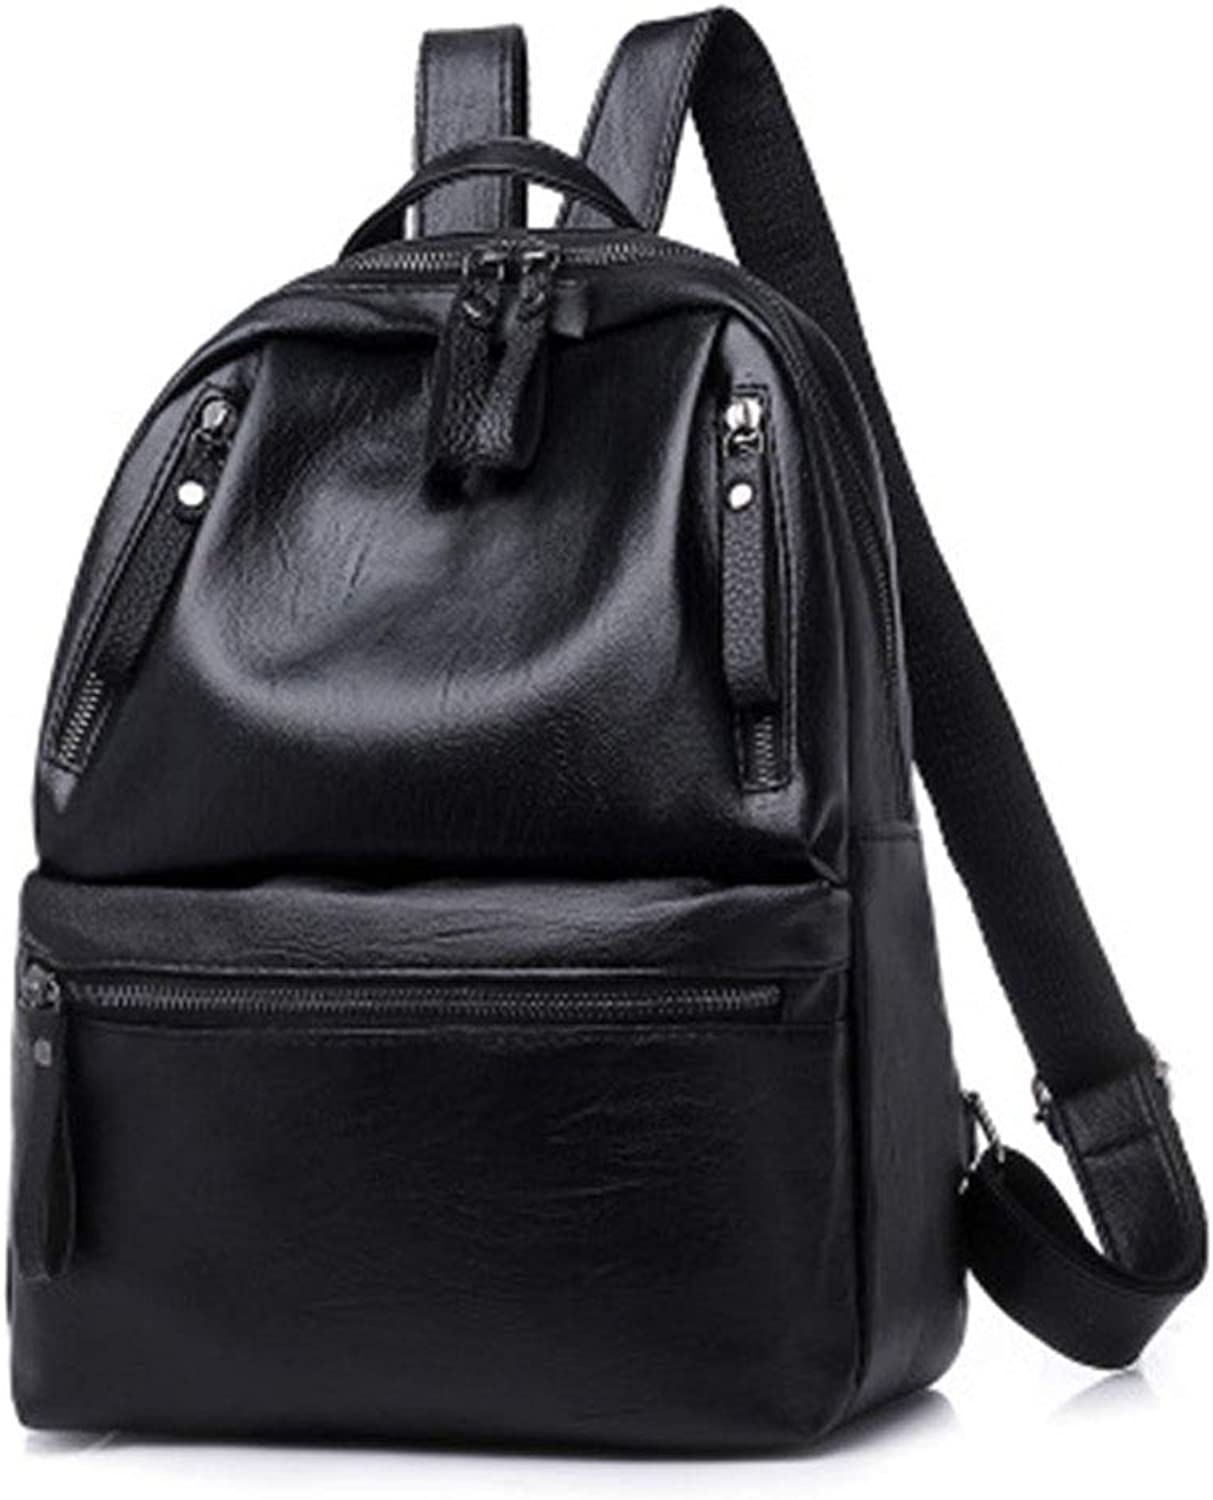 Trend Pu Leather Fashion Versatile Leisure Travel Backpack, LargeCapacity Backpack, Suitable for Ladies Outdoor Travel